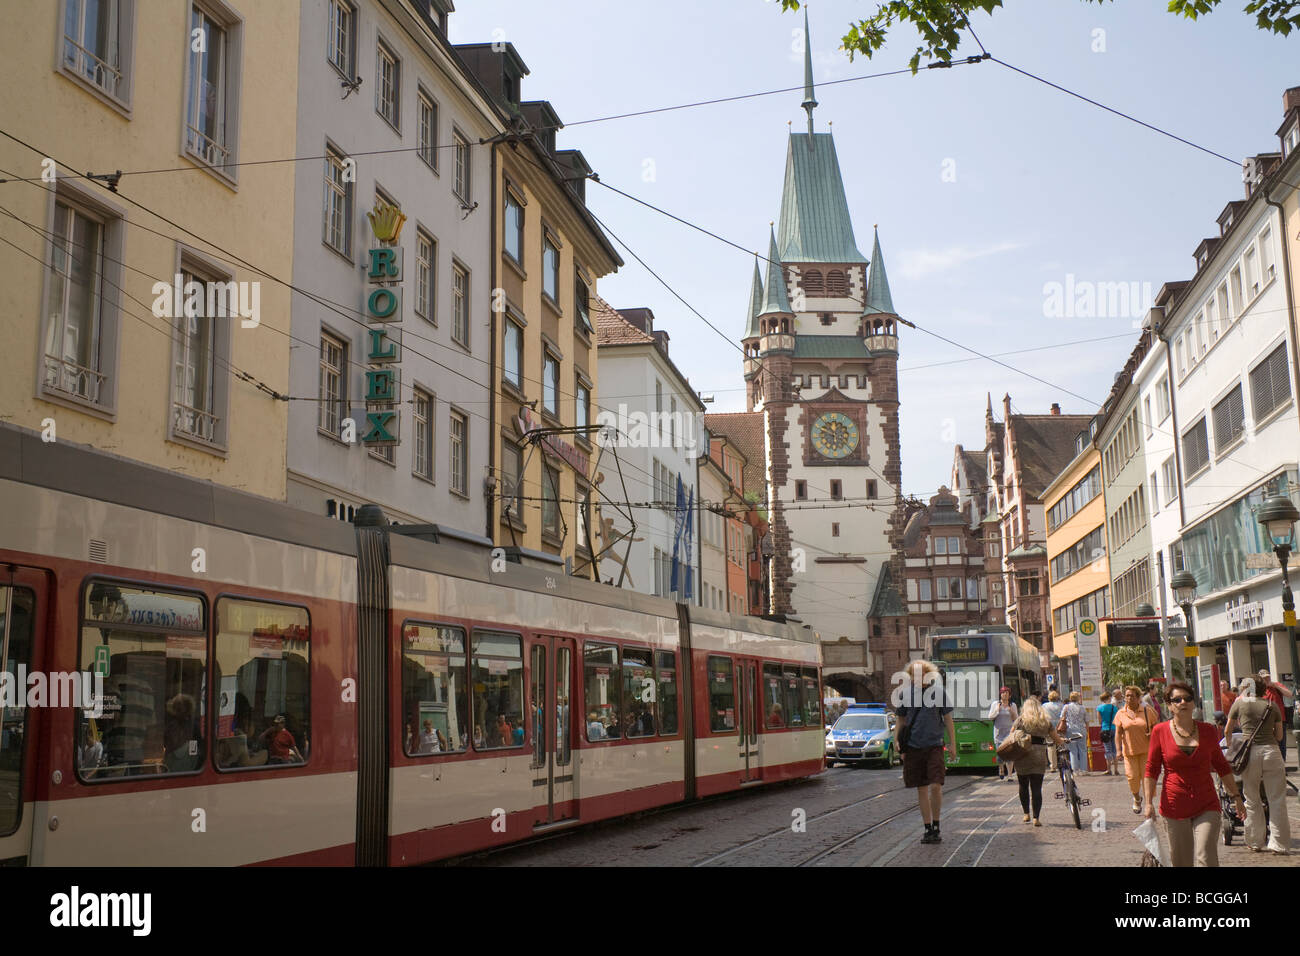 freiburg im breisgau germany eu looking towards martinstor in the stock photo 24950297 alamy. Black Bedroom Furniture Sets. Home Design Ideas